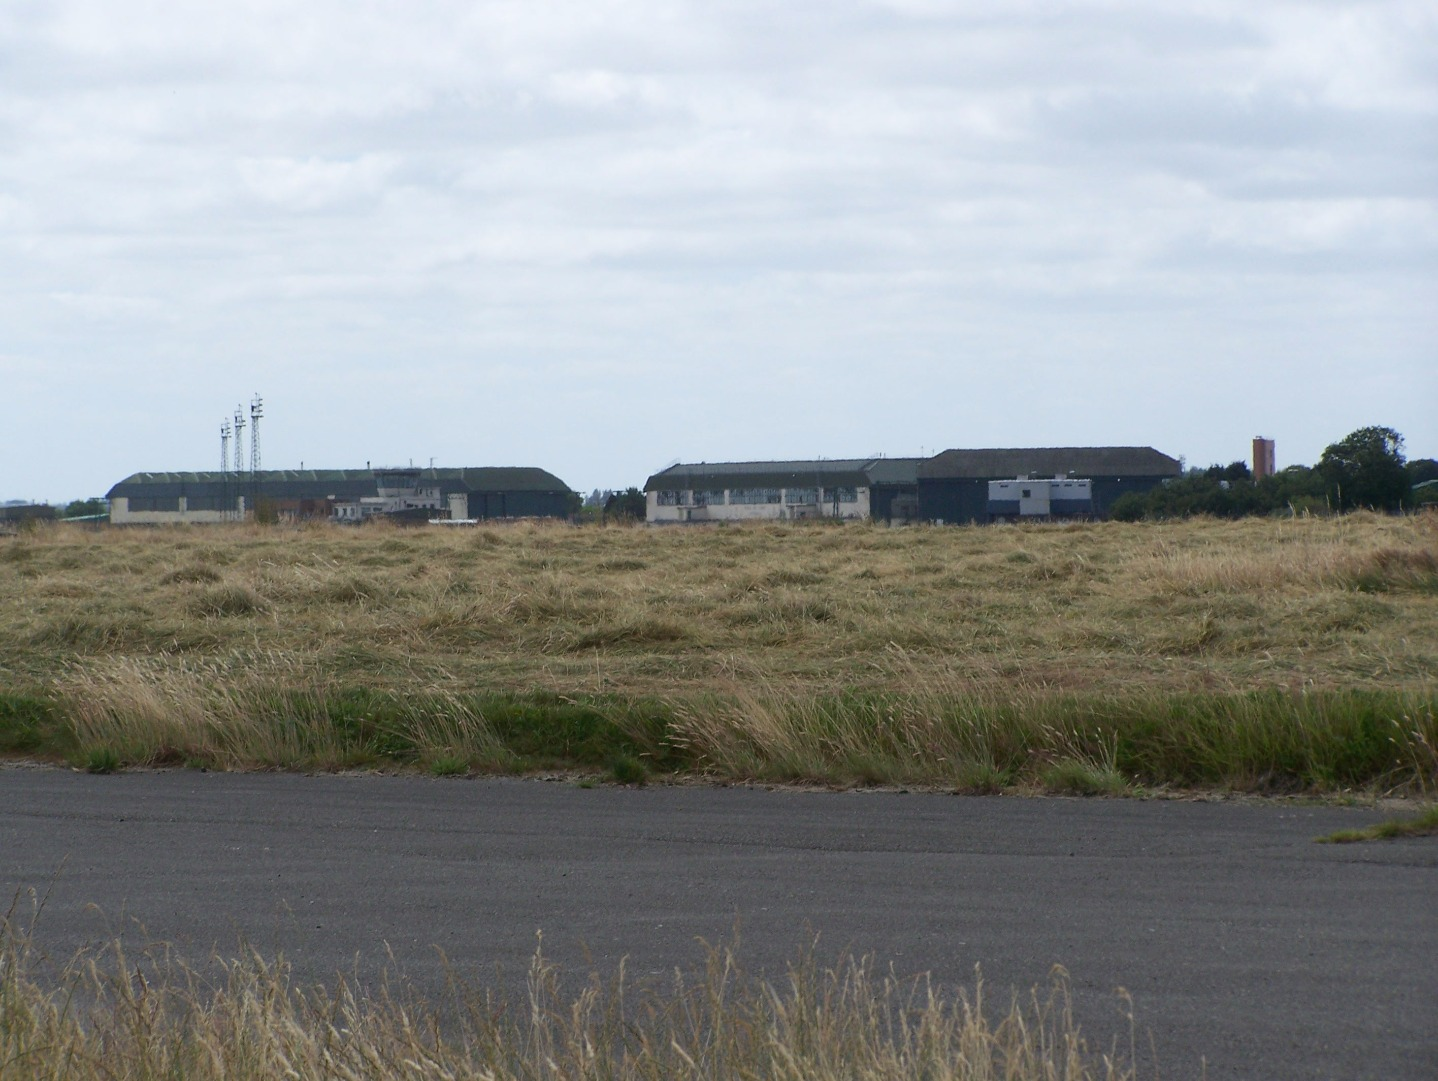 005Looking approximately south-west on north-east side of airfield towards control tower and Type C1 hangars 14:7:06.JPG